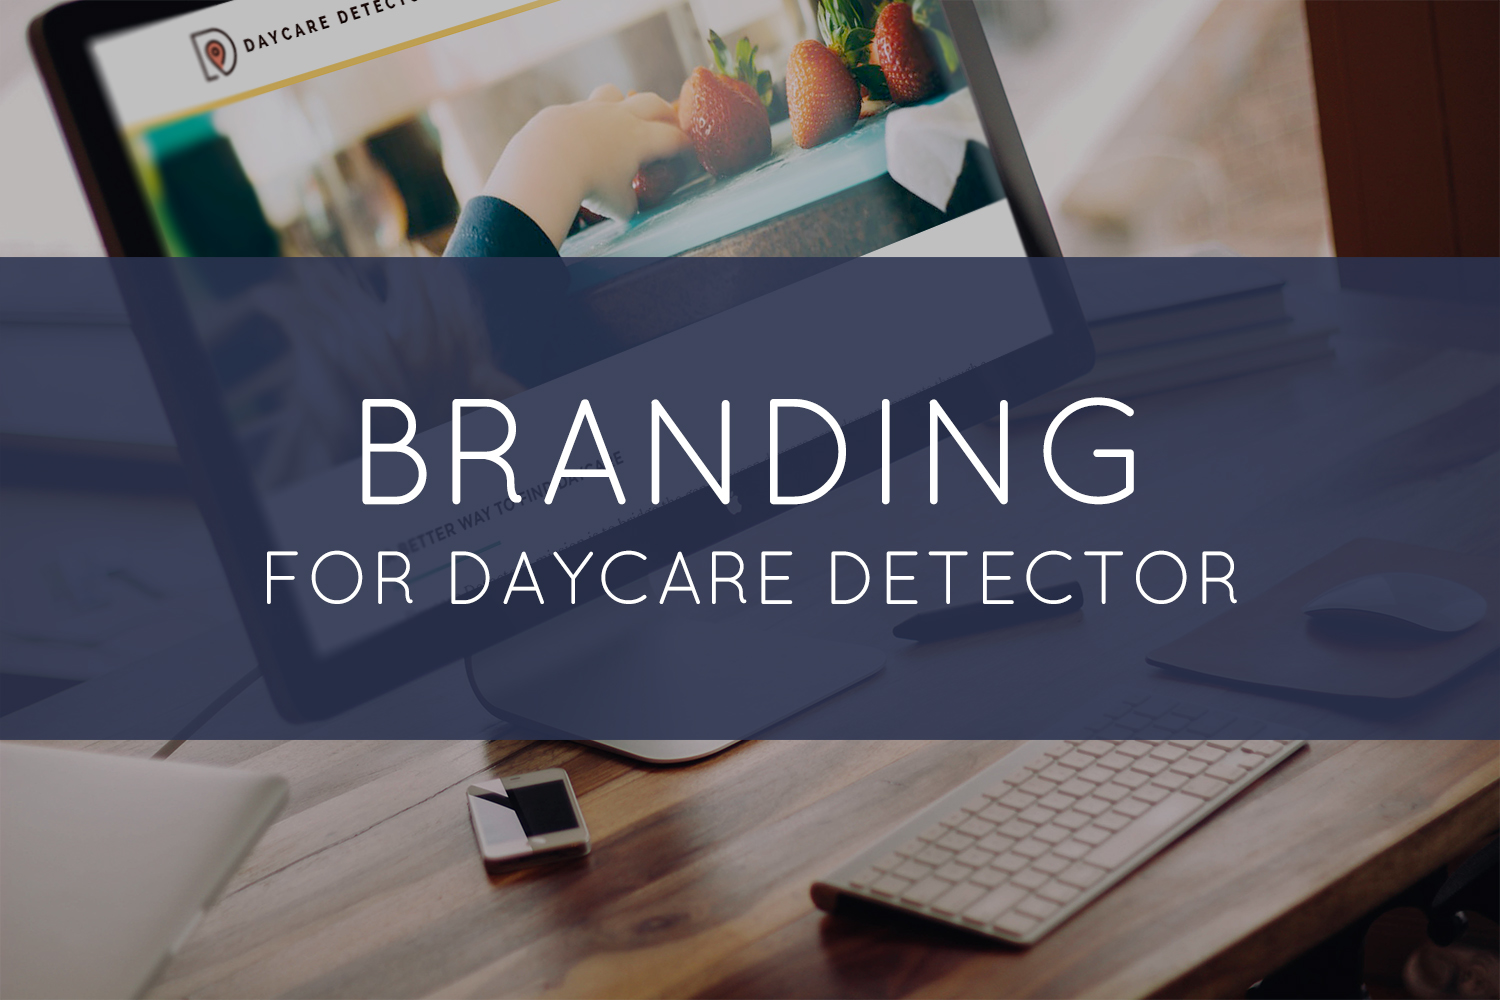 Branding for Daycare Detector